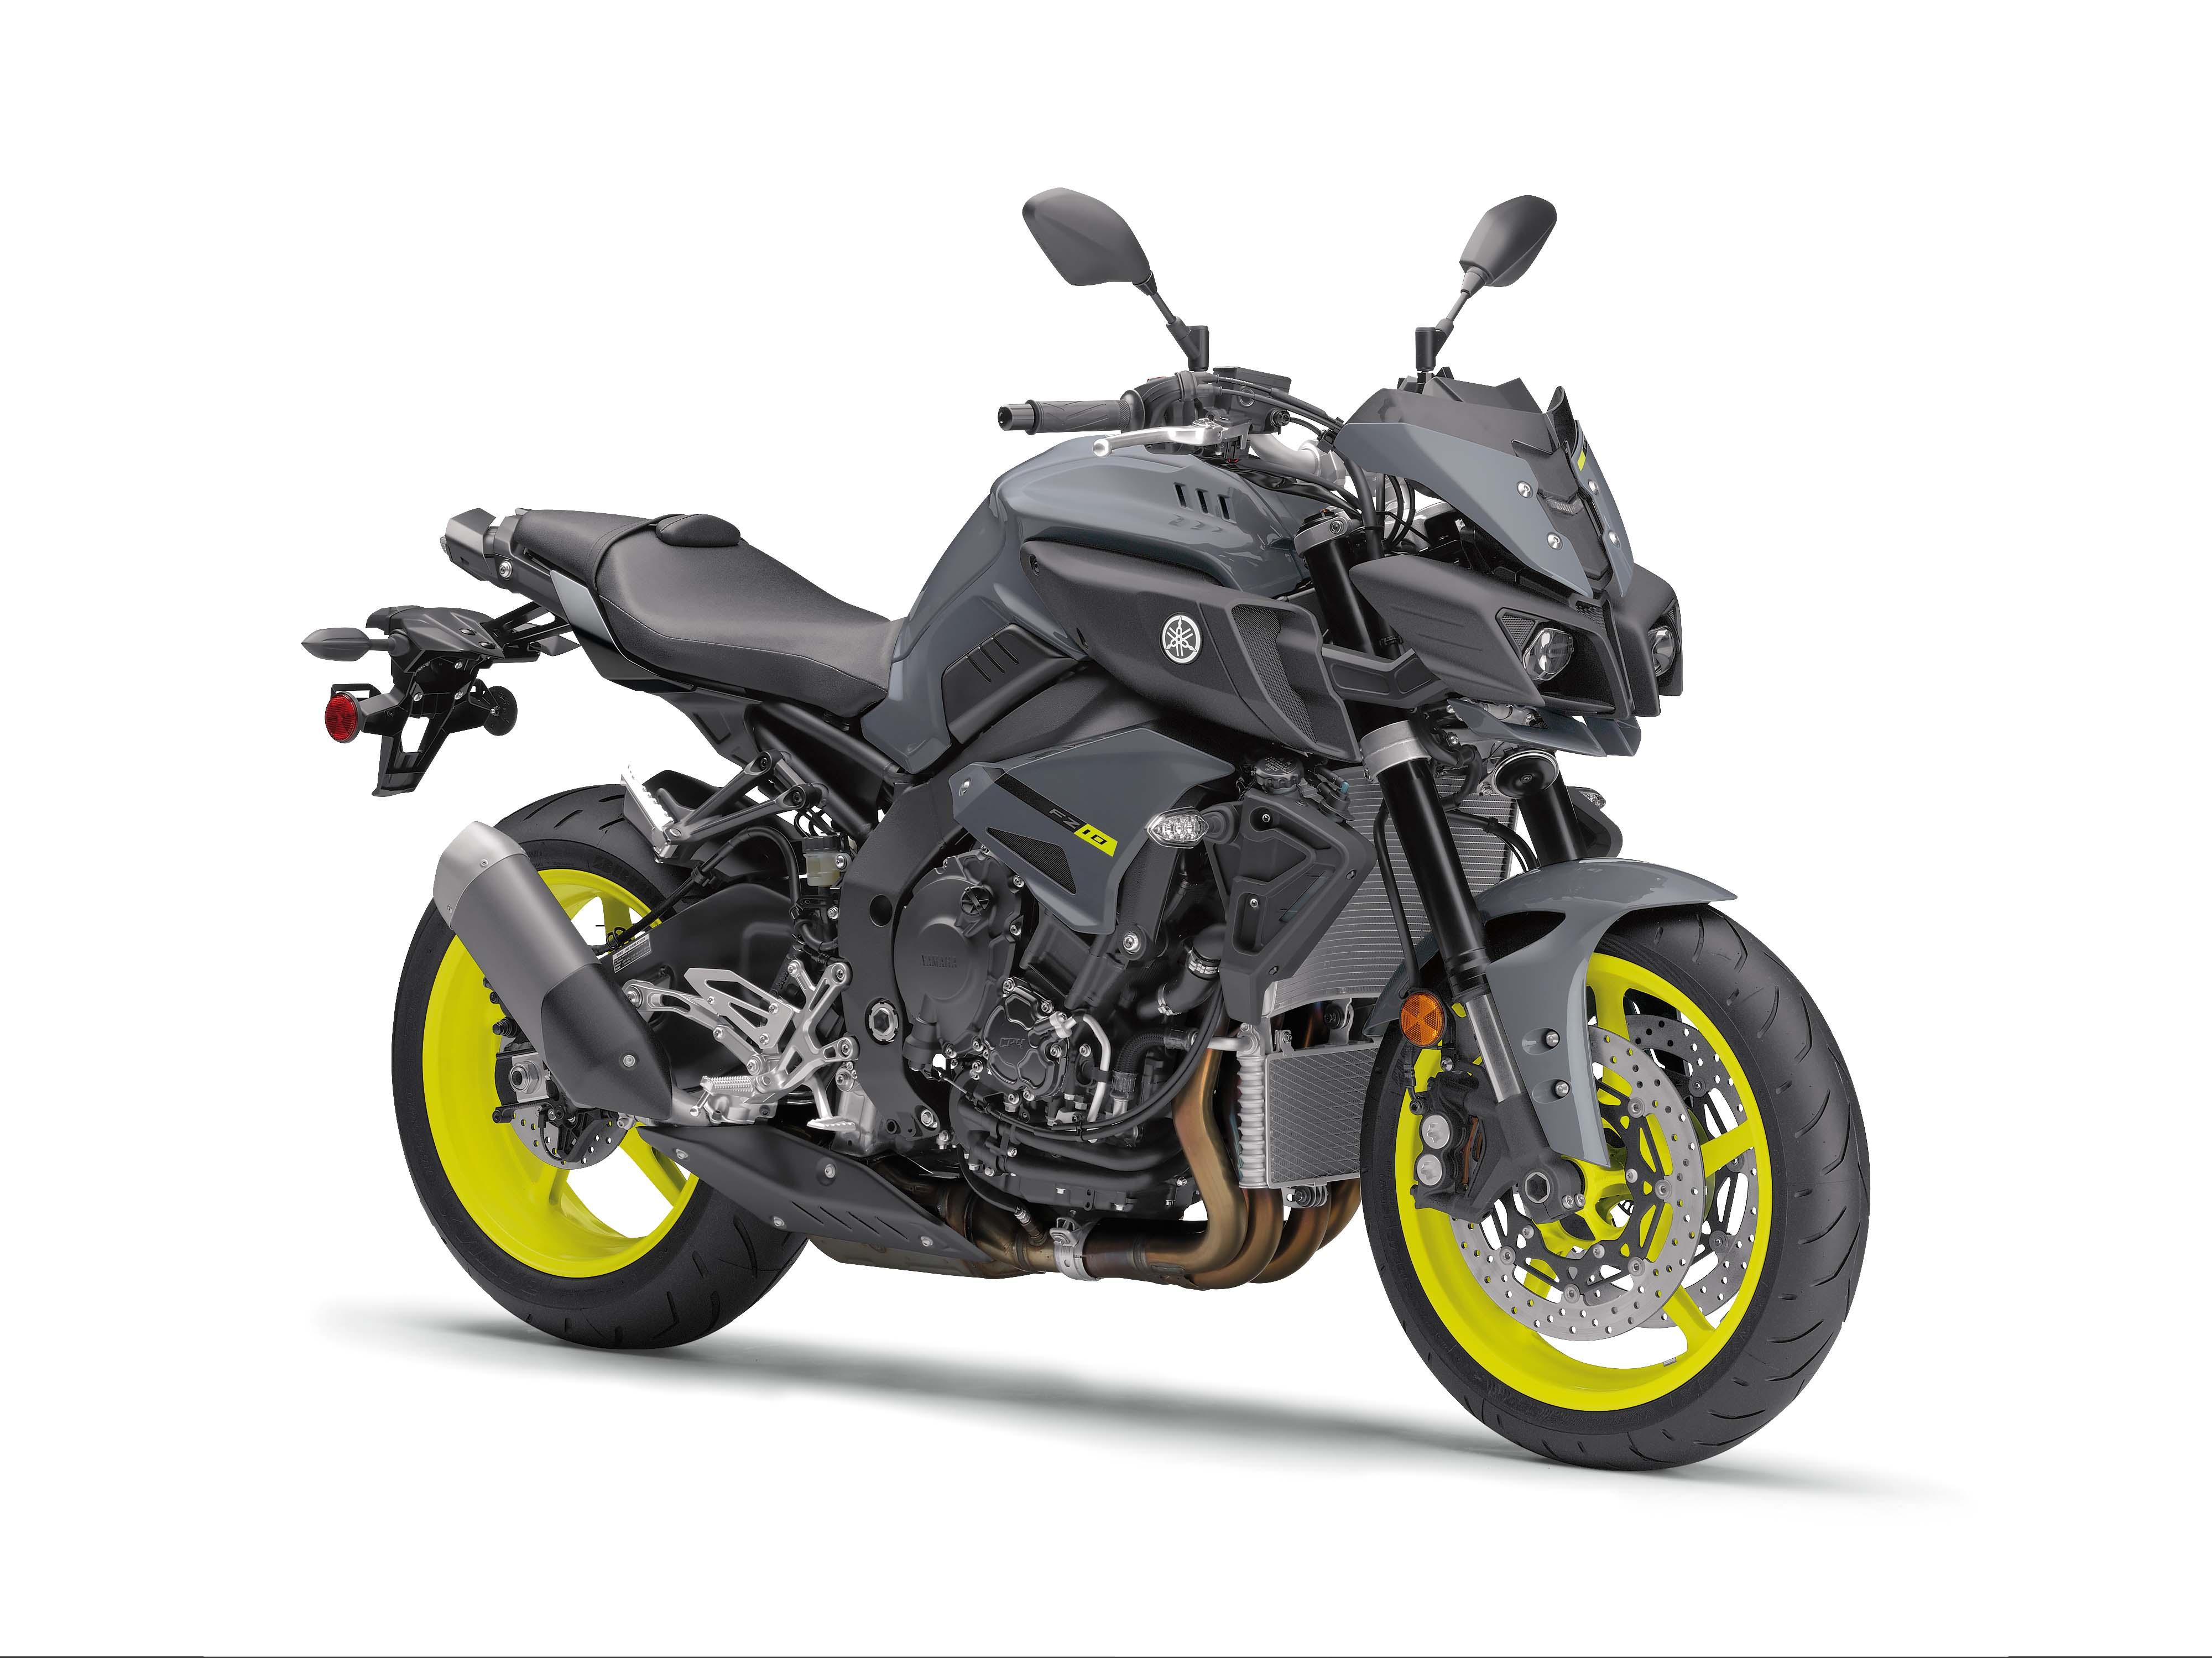 ... over the 2017 Yamaha FZ-10 soon. Keep an eye out for our ride report